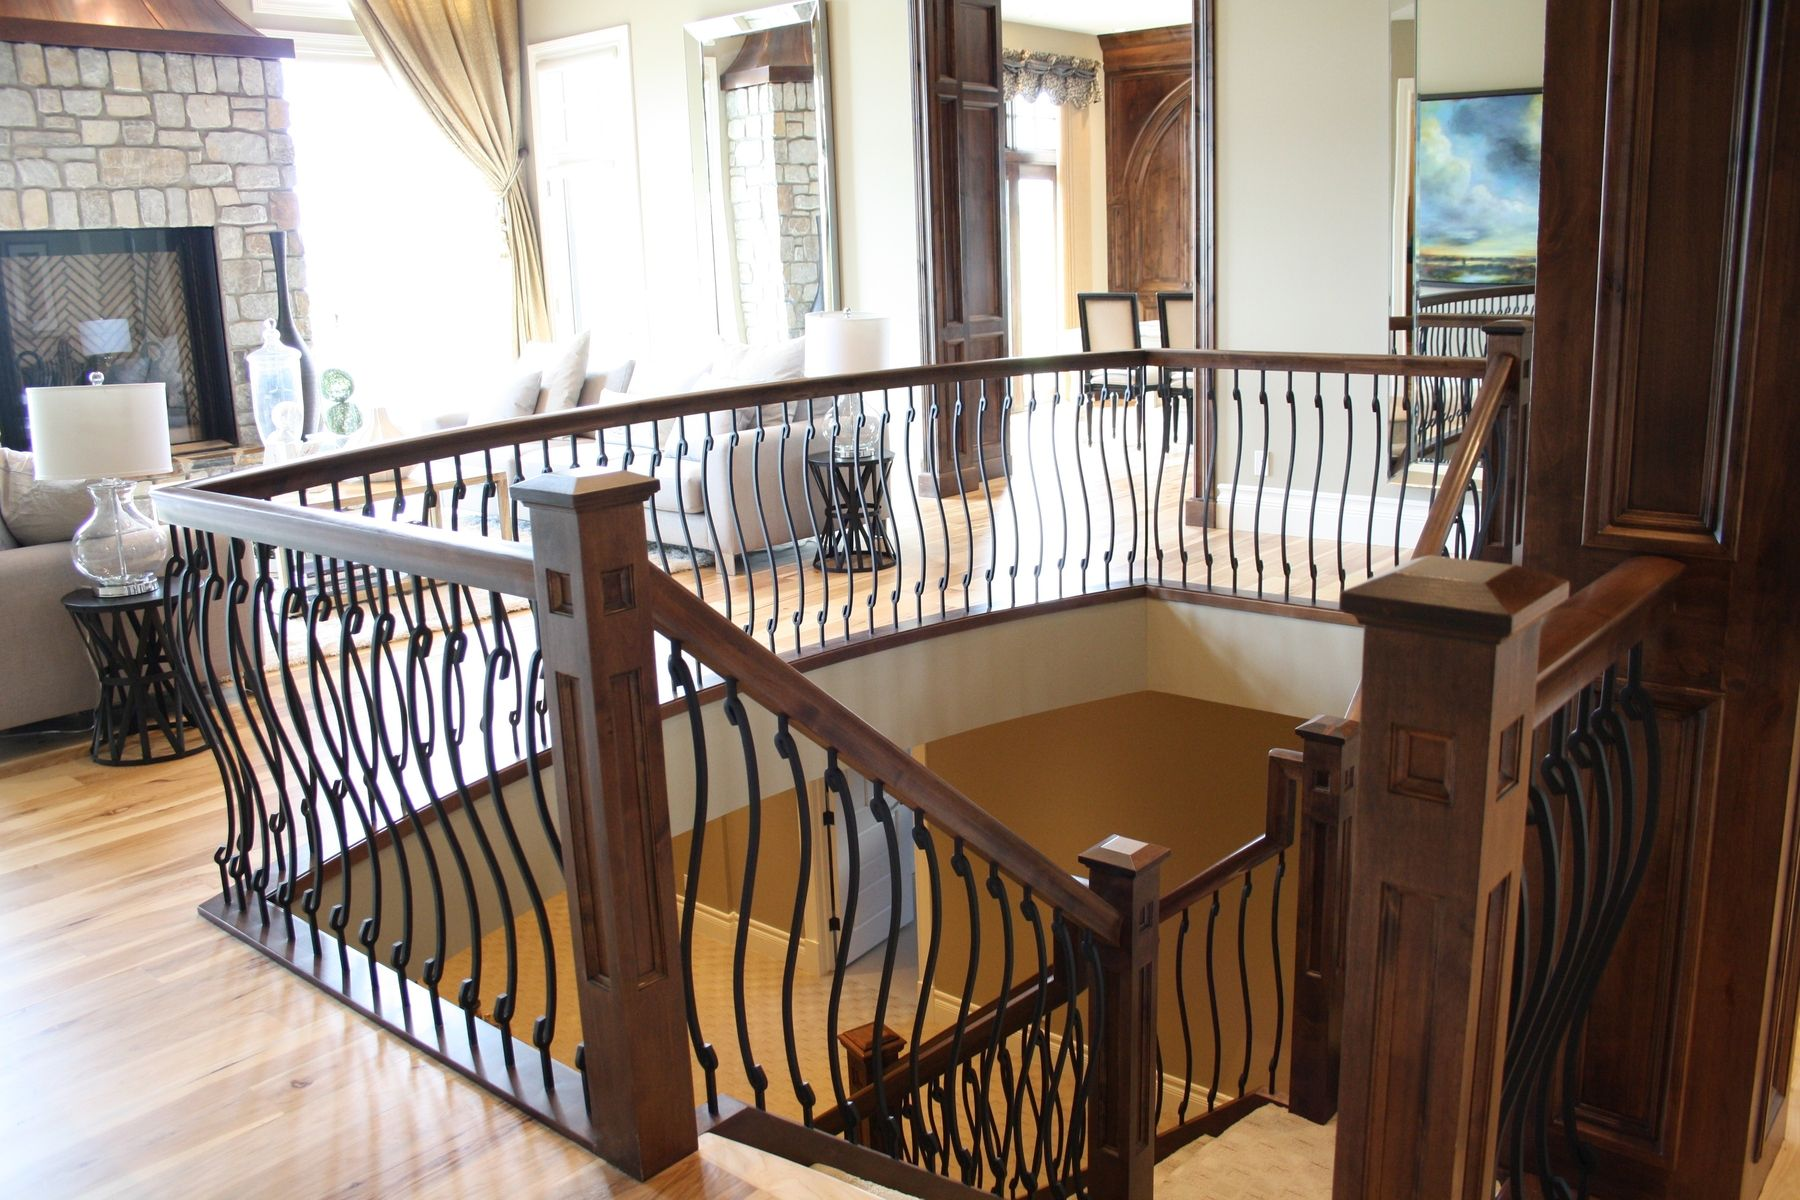 Wood Stair Rail With S Shaped Spindles